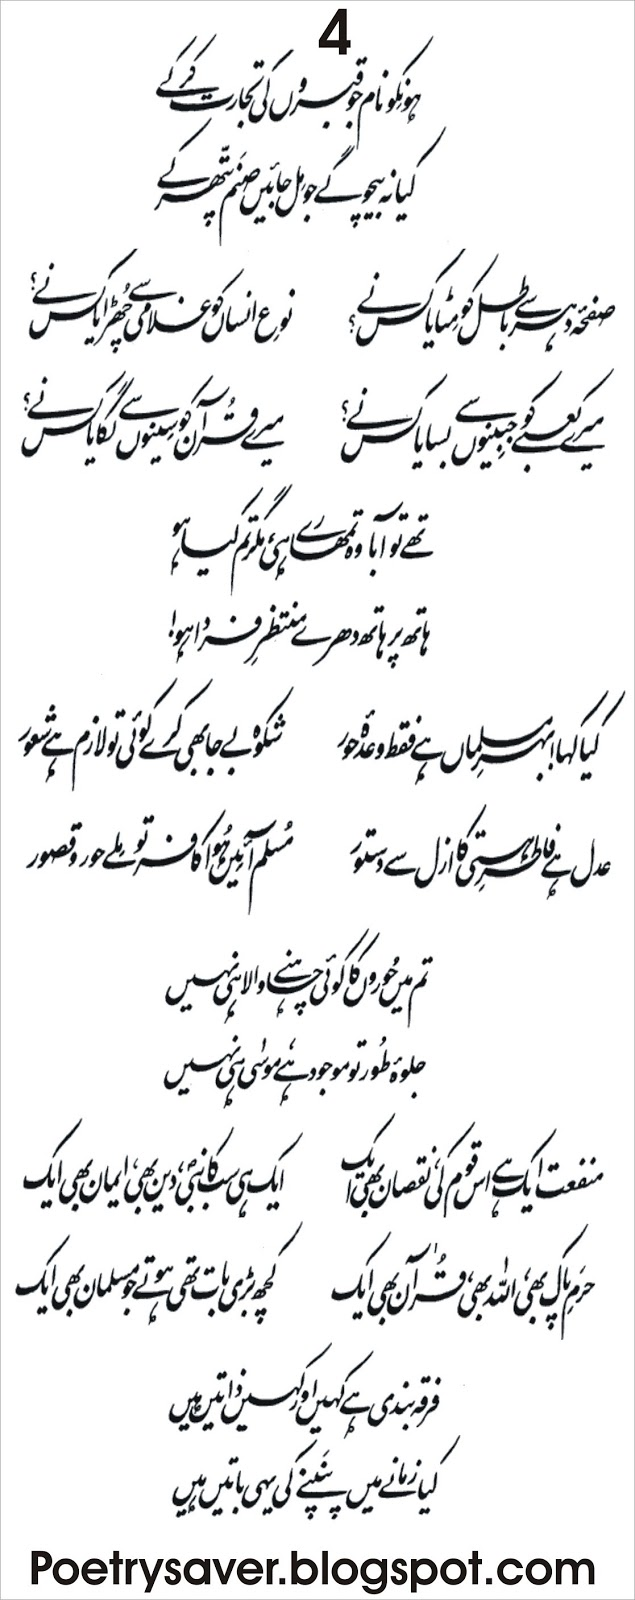 Allama Iqbal Shikwa English Translation / Iqbal Poetry ...